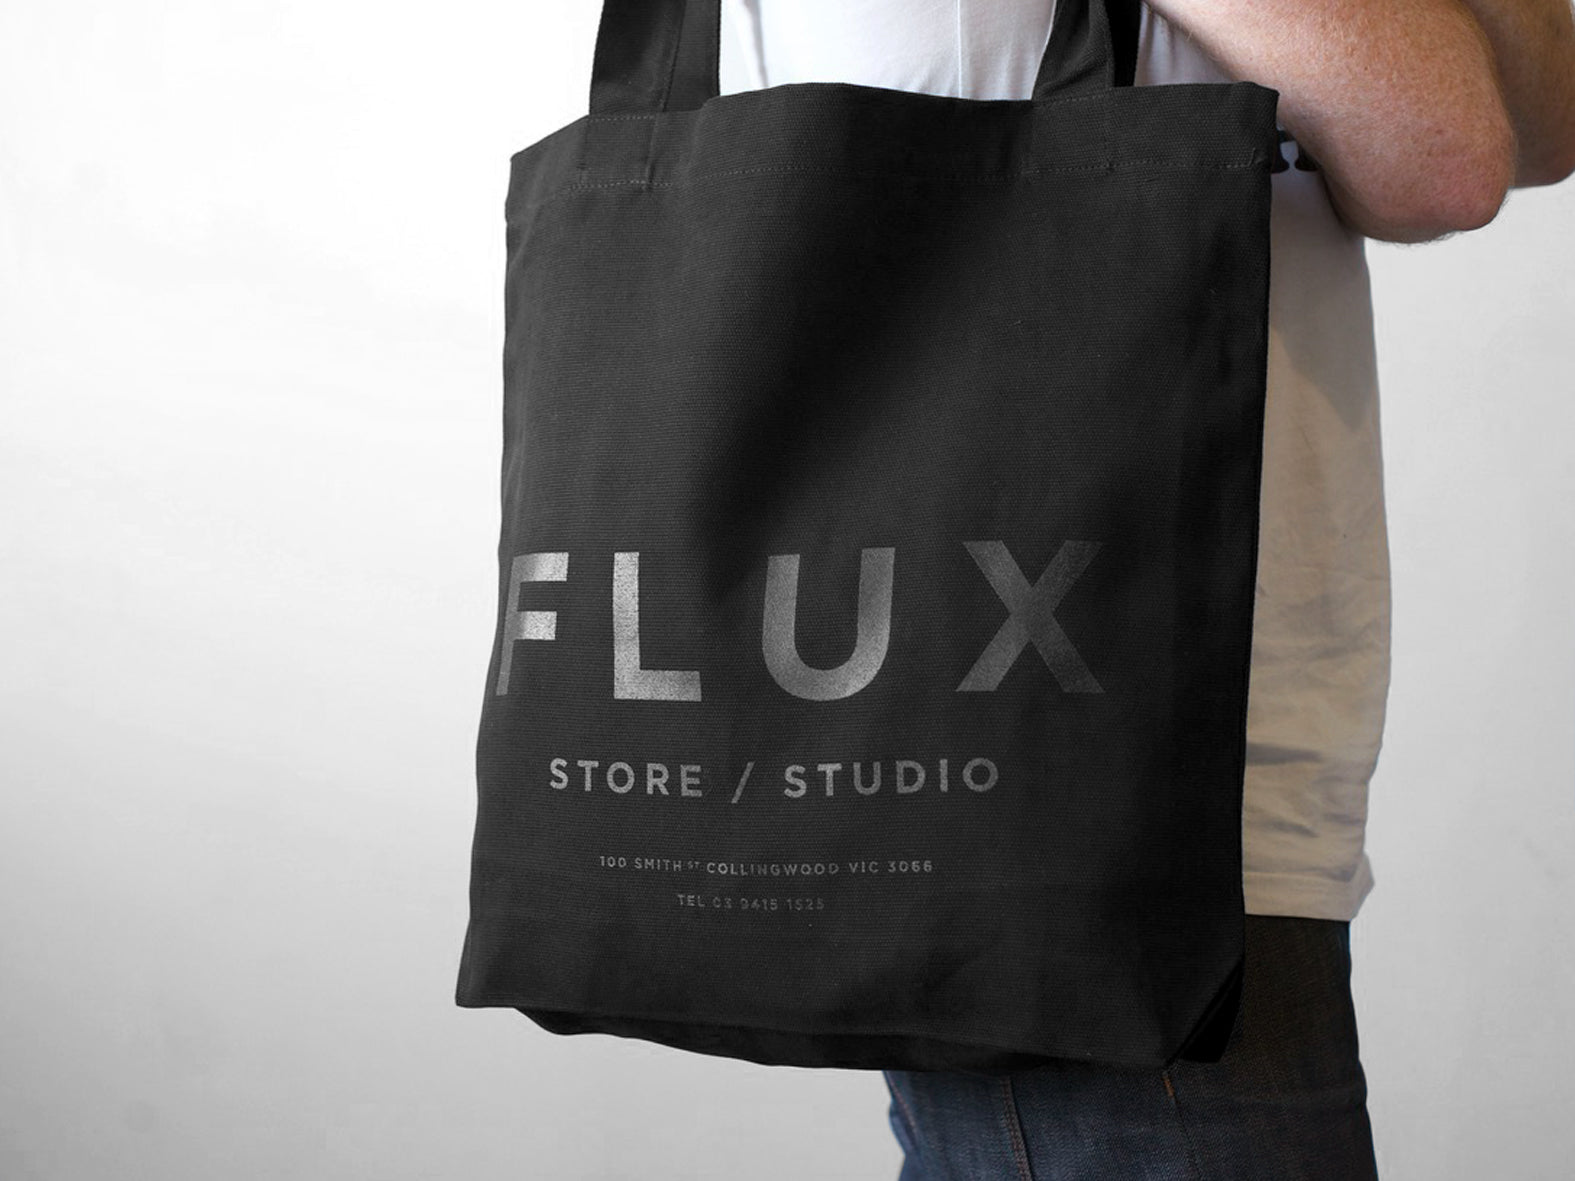 FLUX STORE / STUDIO. BLACK ON BLACK CANVAS TOTE